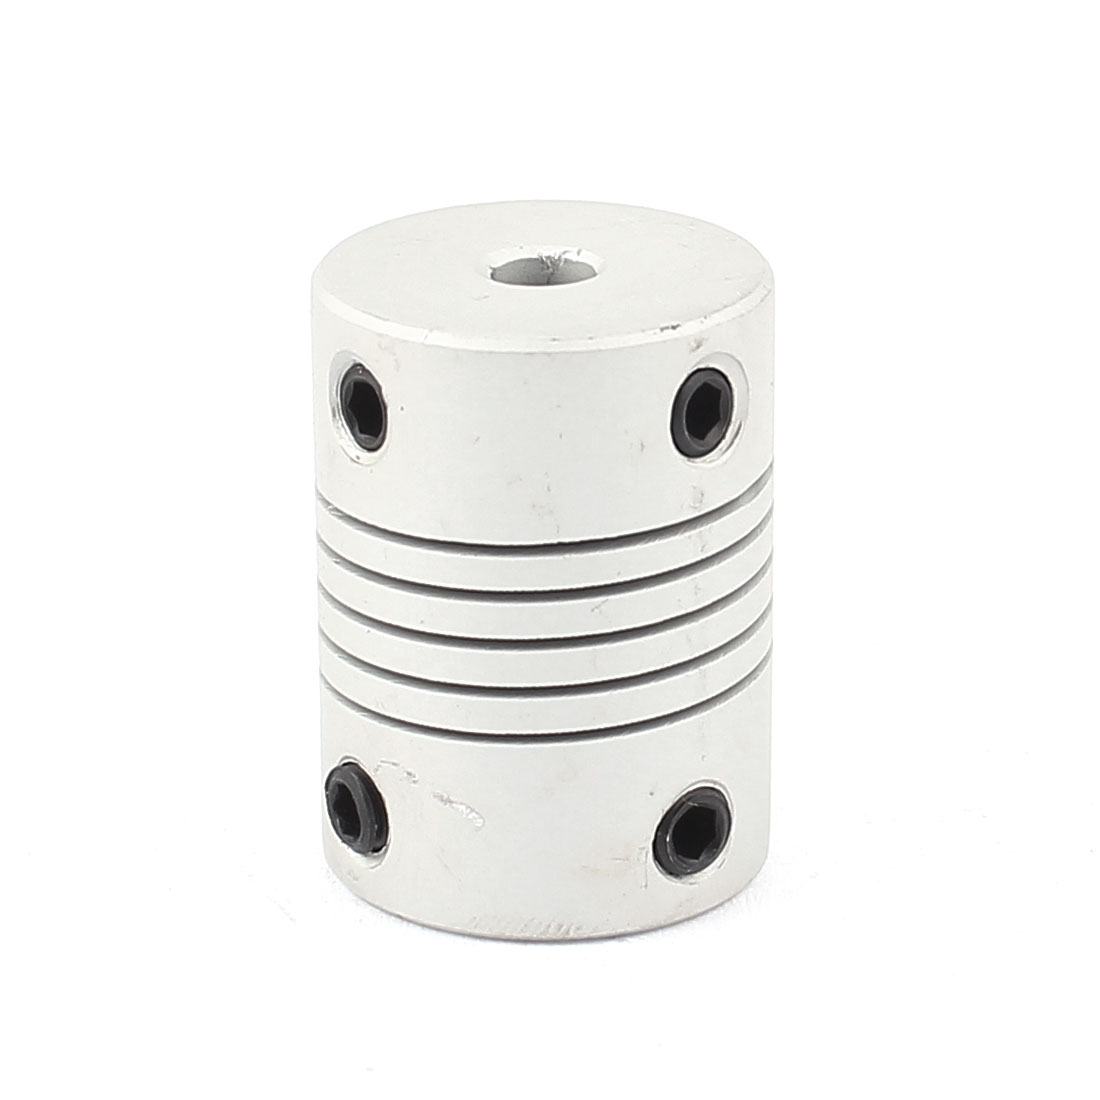 Motor Shaft Dia 4mm to 8mm Joint Helical Beam Coupler Coupling D18L25